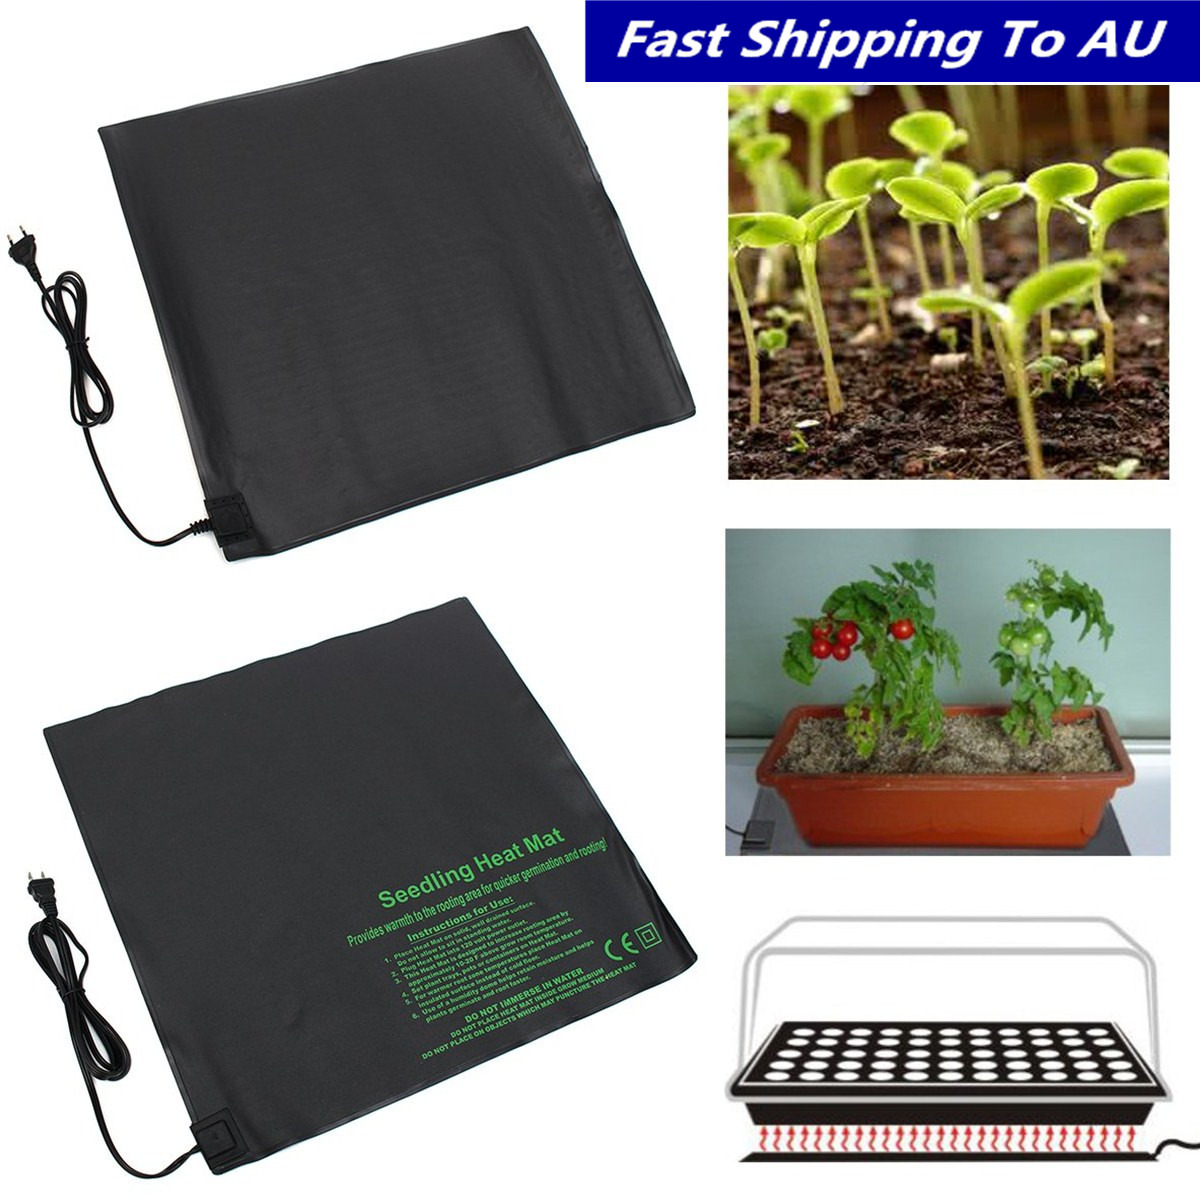 52x52cm 110V/220V Seedling Heating Mat Waterproof Plant Seed Germination Propagation Clone Starter Pad Garden Supplies EU USPlug